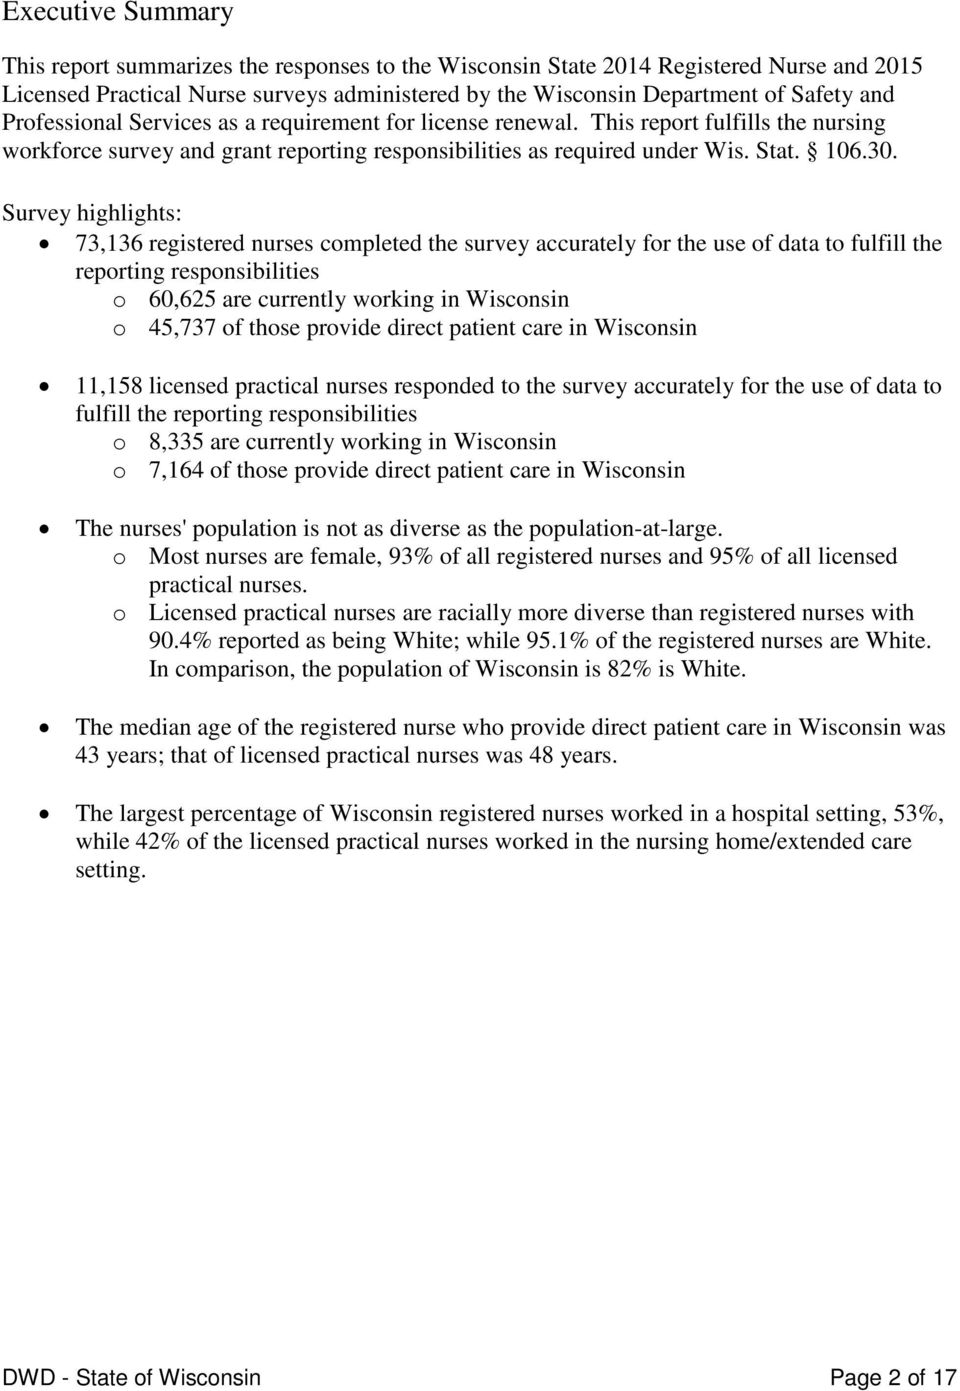 Survey highlights: 73,136 registered nurses completed the survey accurately for the use of data to fulfill the reporting responsibilities o 60,625 are currently working in Wisconsin o 45,737 of those